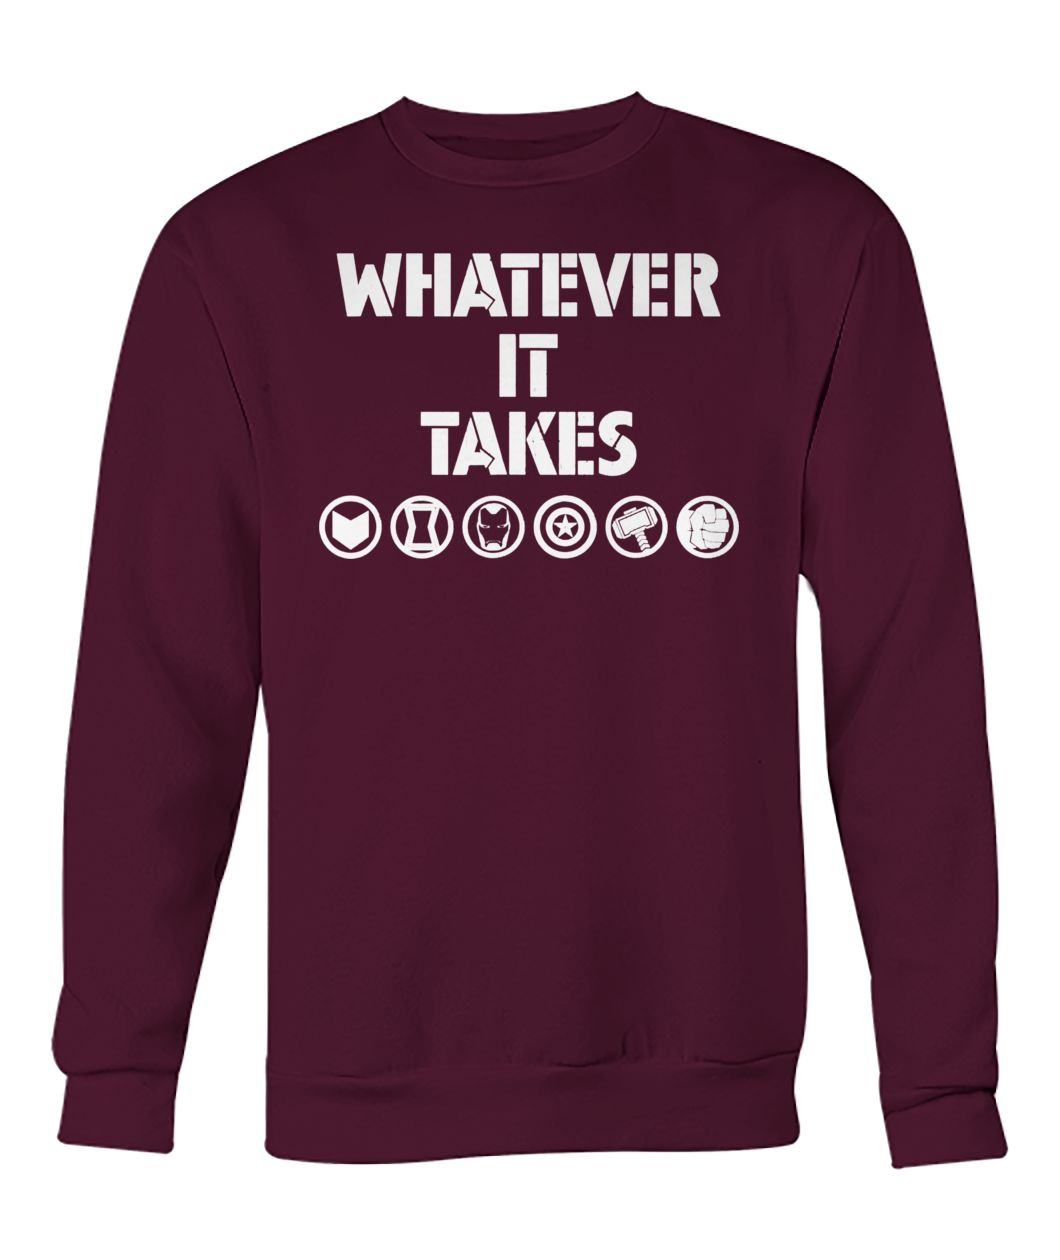 Marvel avengers endgame whatever it takes crew neck sweatshirt